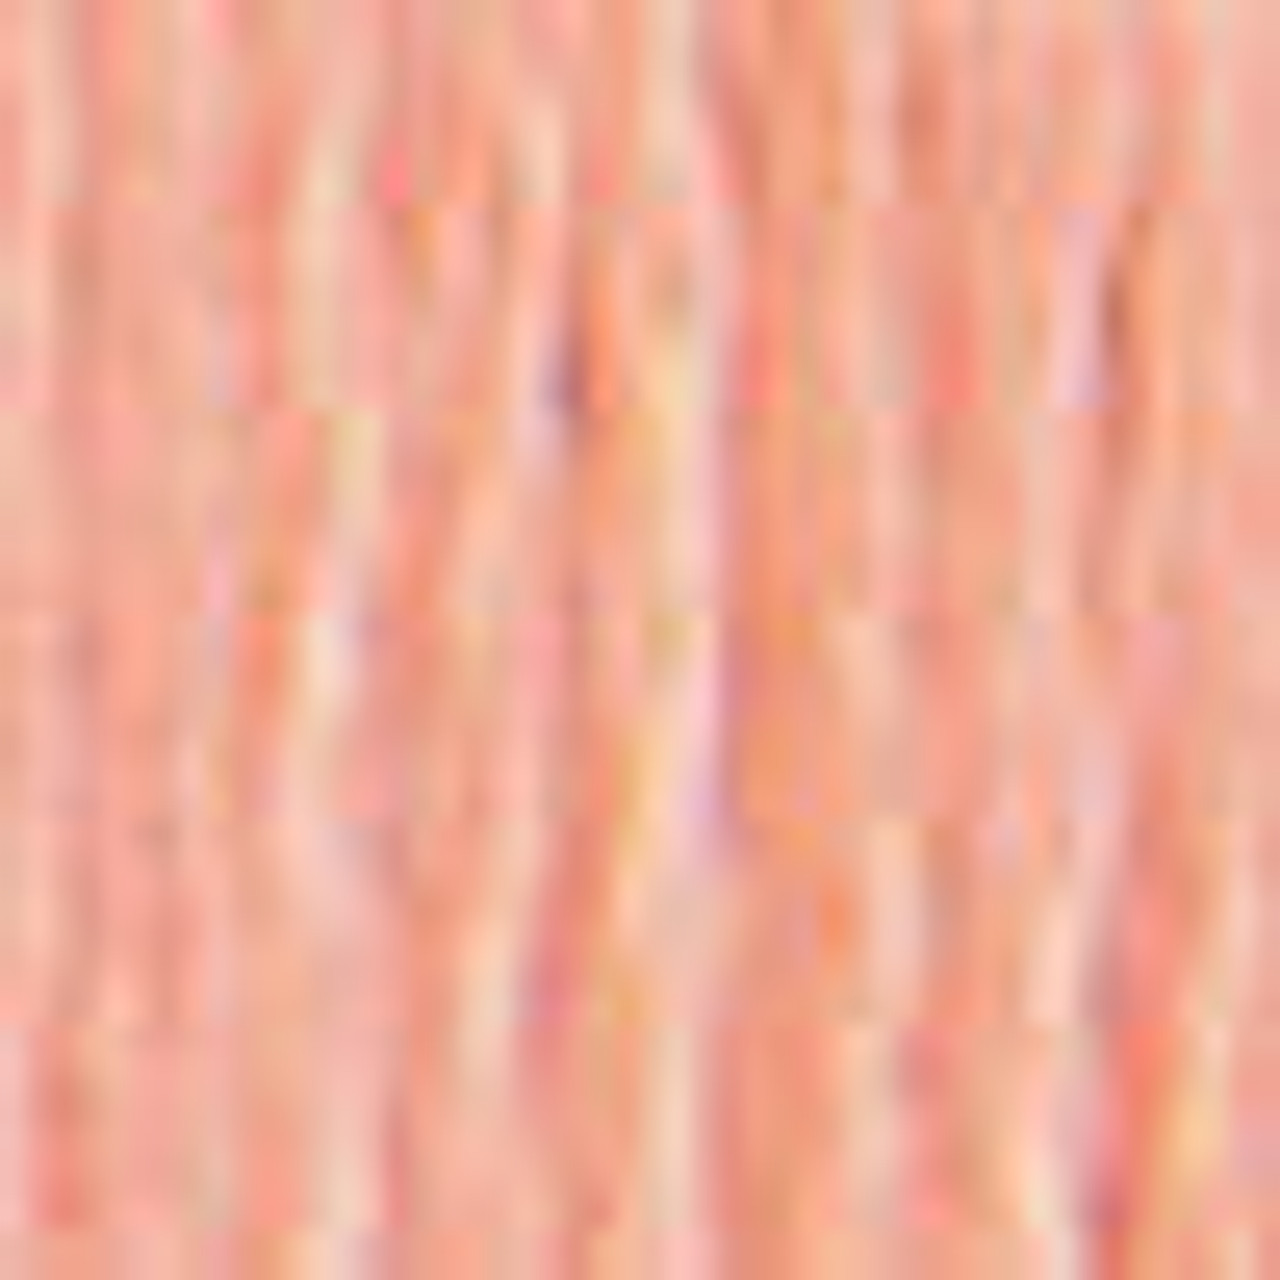 DMC # 3824 Light Apricot Floss / Thread